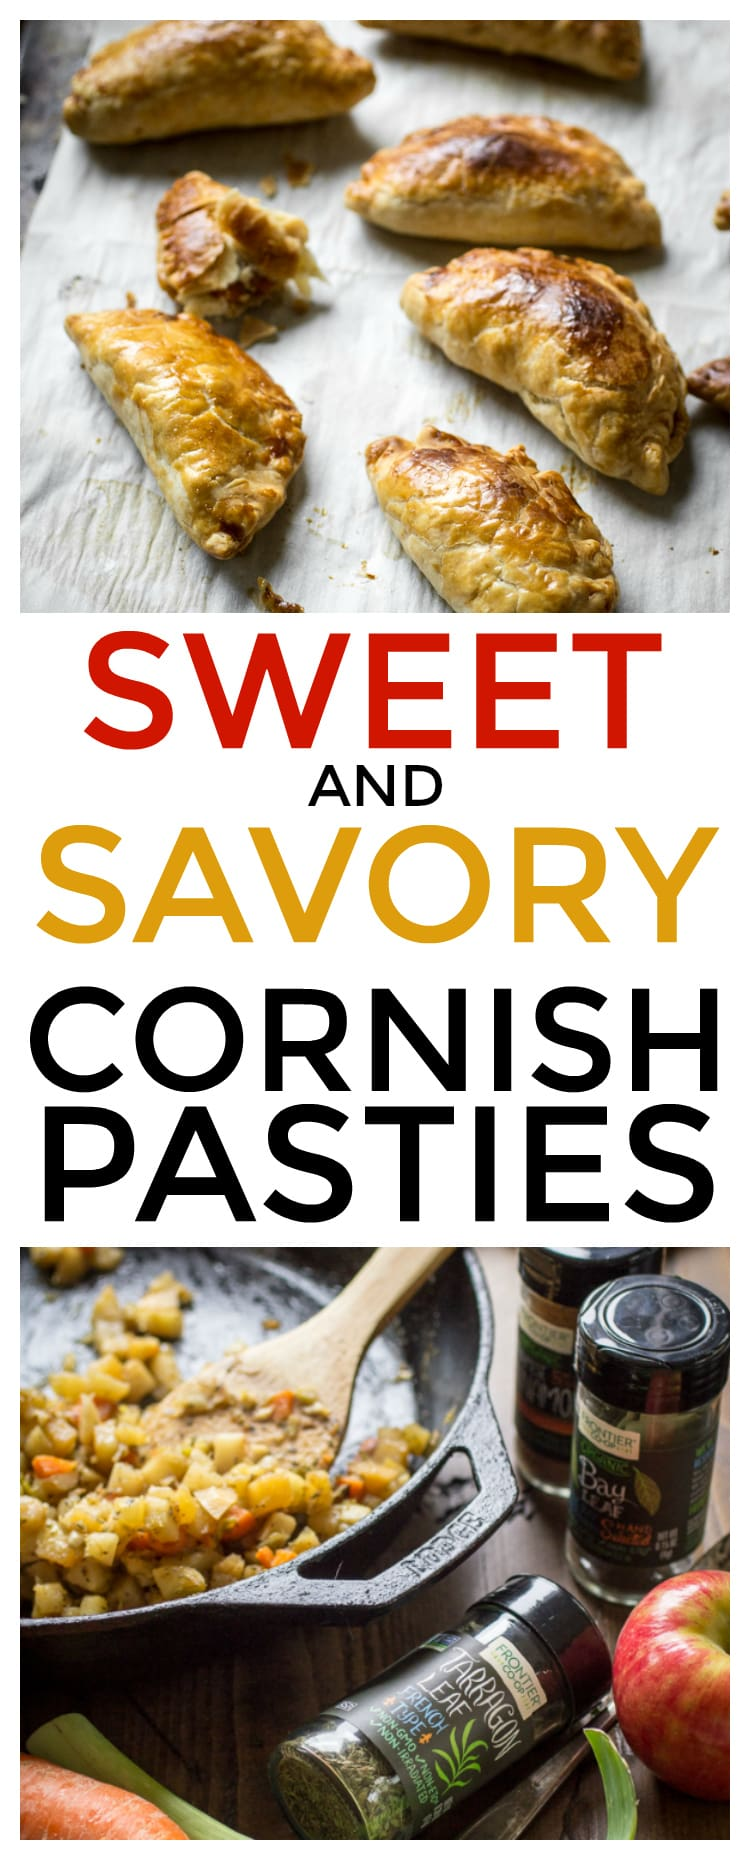 Whip up these vegetarian Cornish pasties next time you need an easy and versatile appetizer!